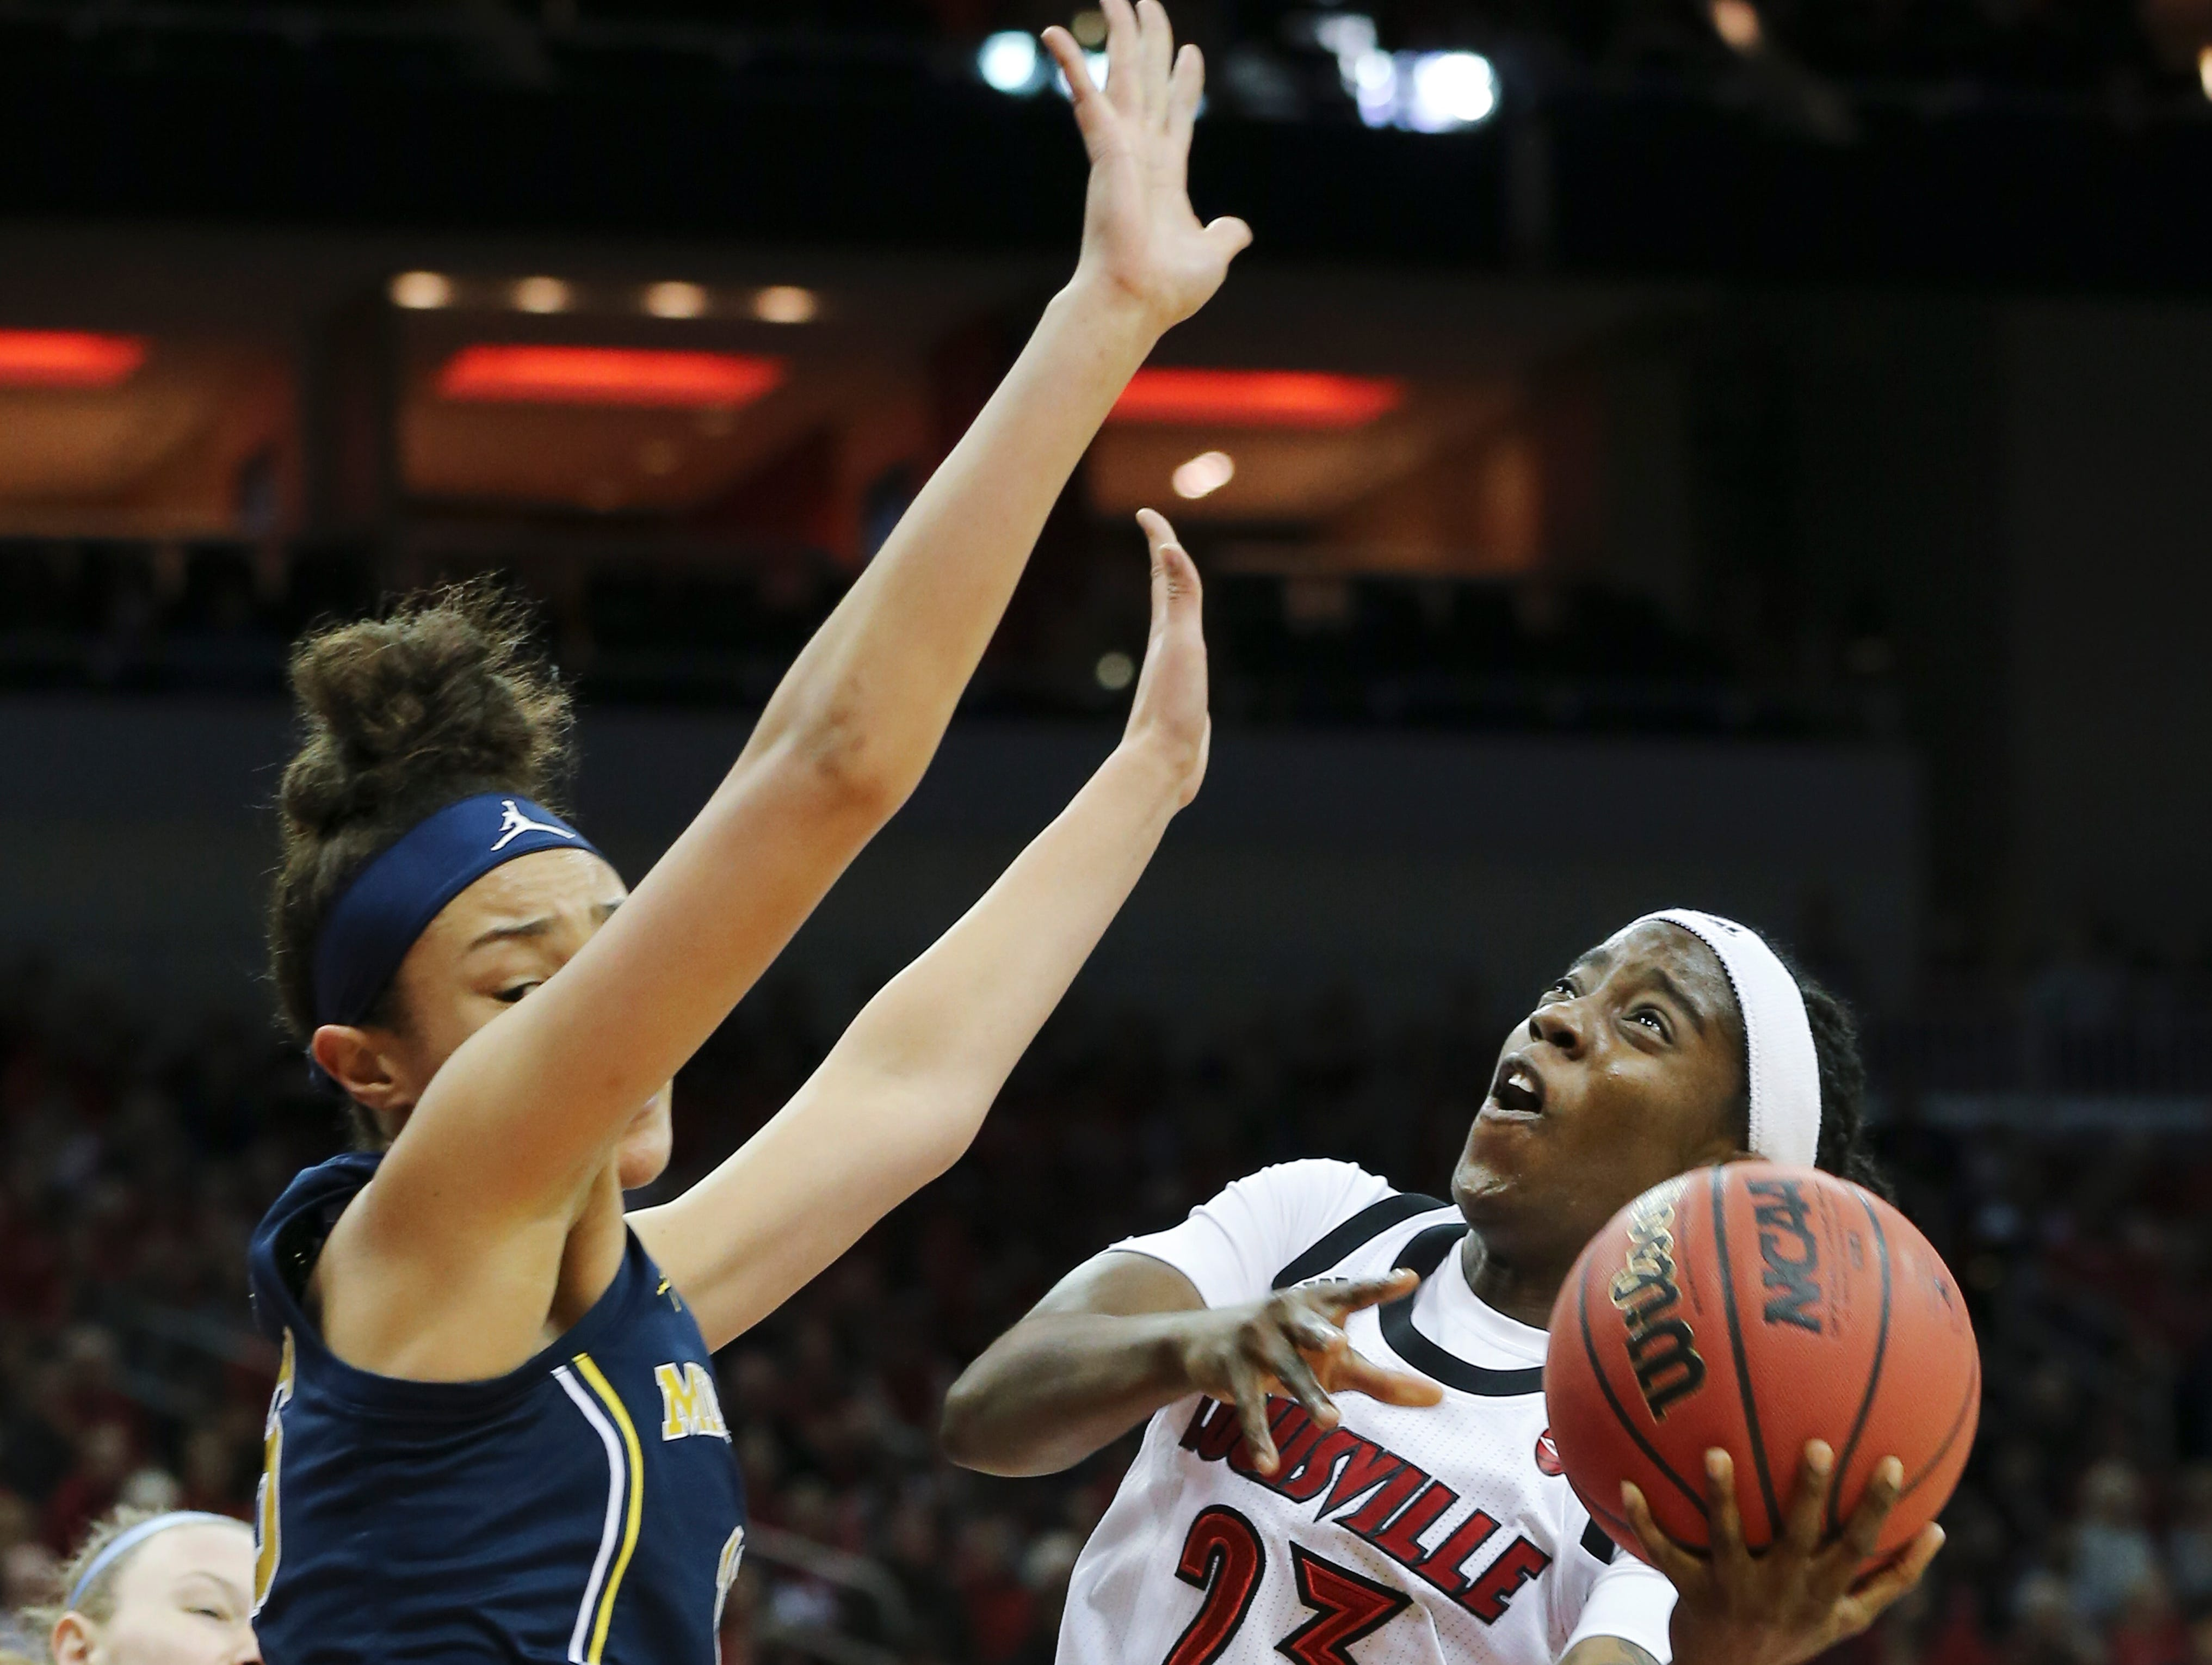 U of L's Jazmine Jones (23) tries to maneuver a tough shot against Michigan's Hailey Brown (15) during the second round of their NCAA Tournament game at the Yum Center.Mar. 24, 2019